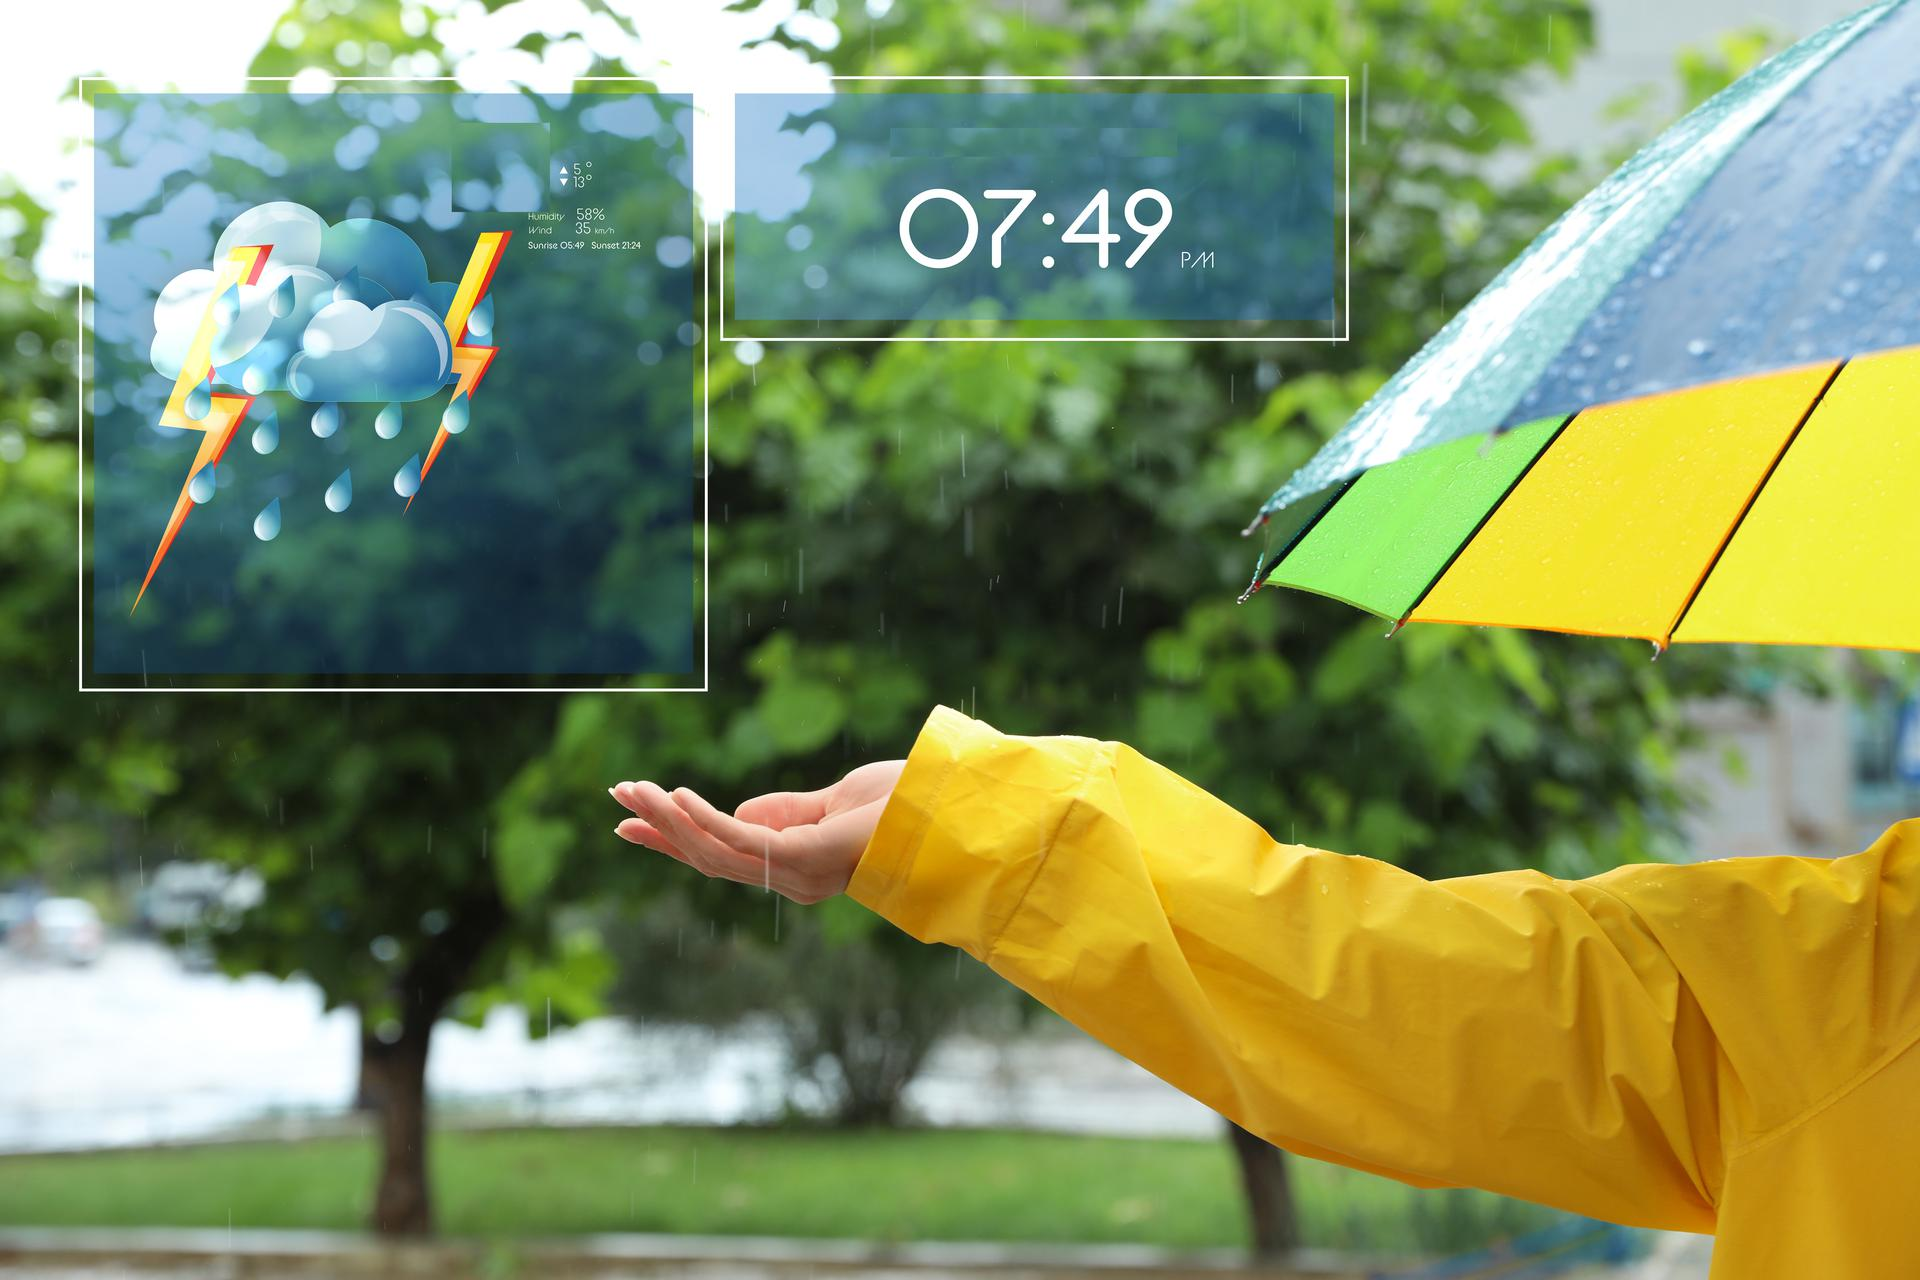 checking the weather: umbrella and hand catching the raindrops